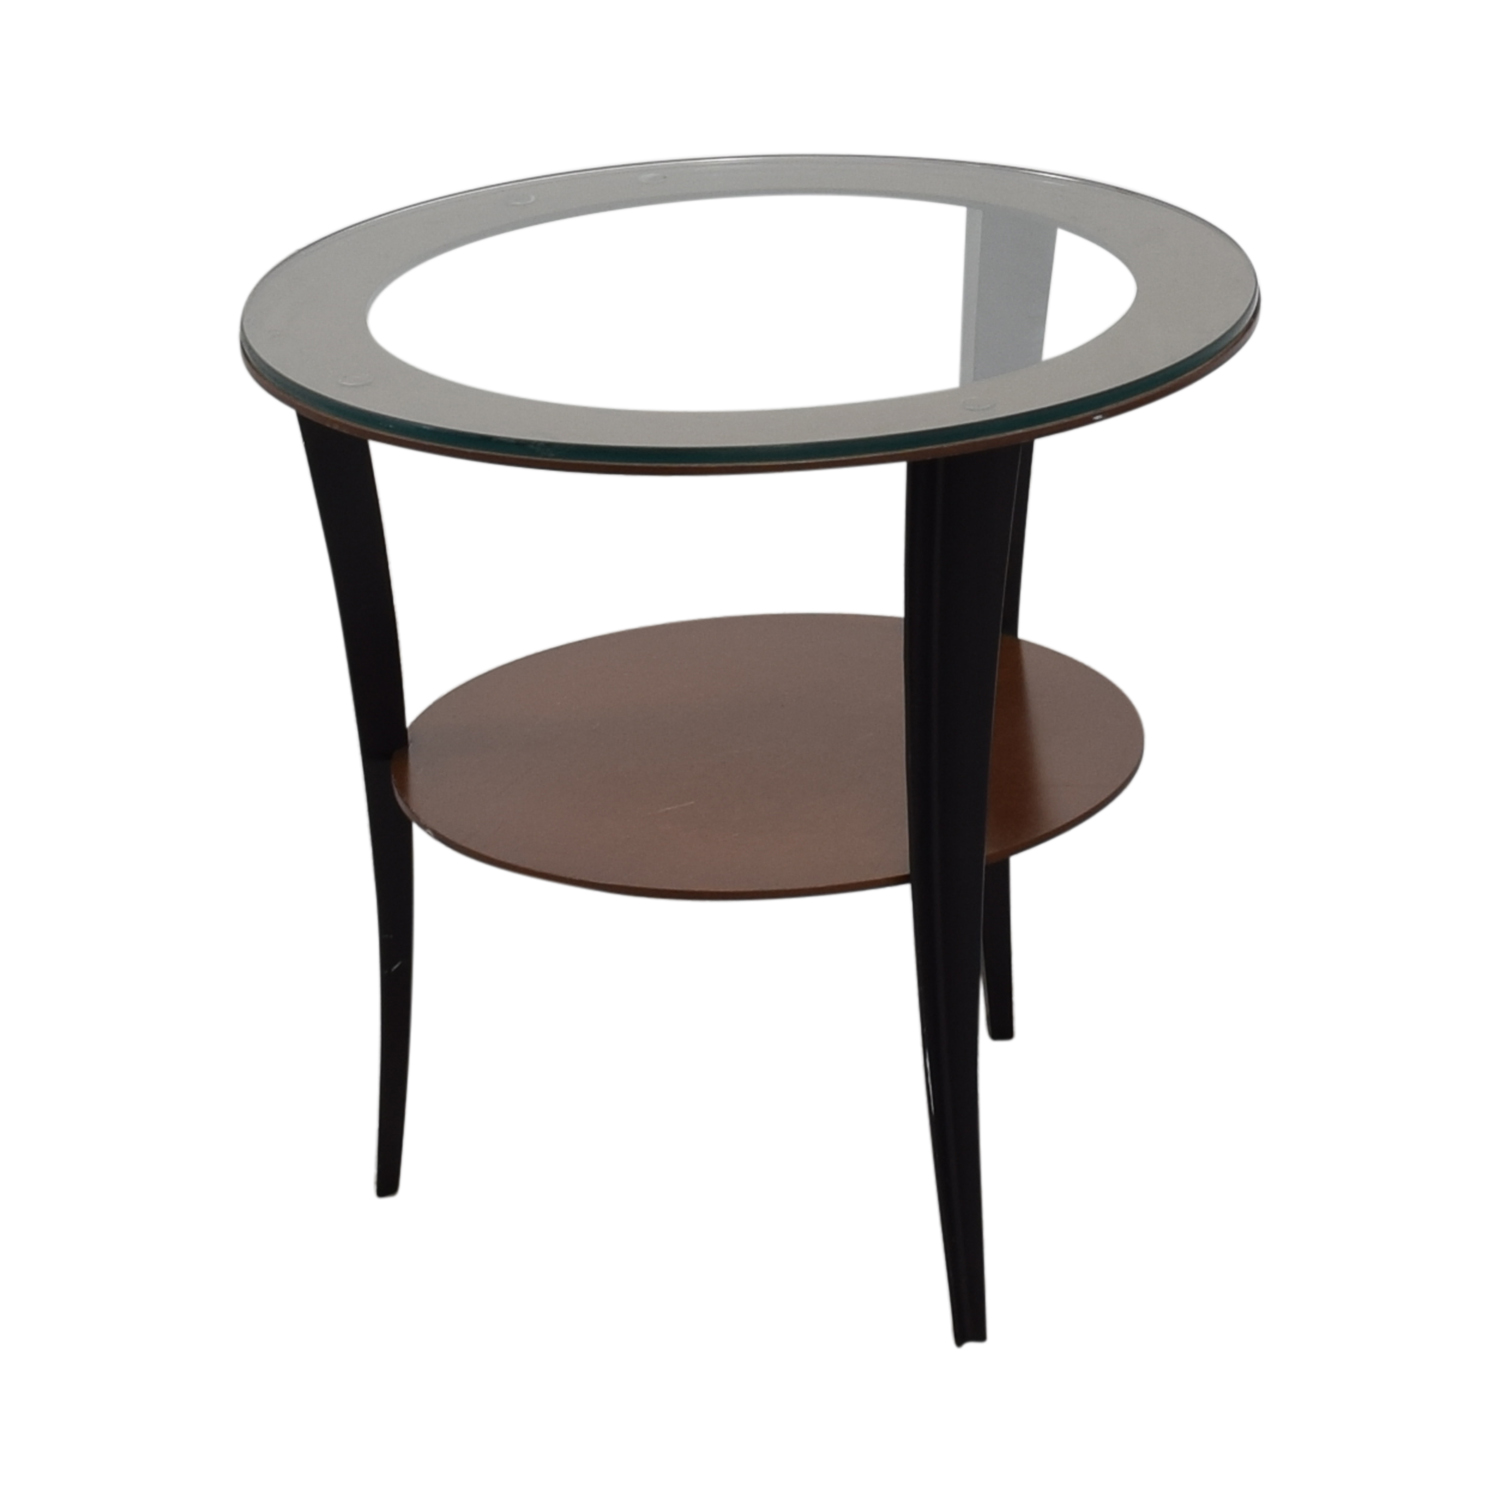 Room & Board Room & Board Round Side Table used